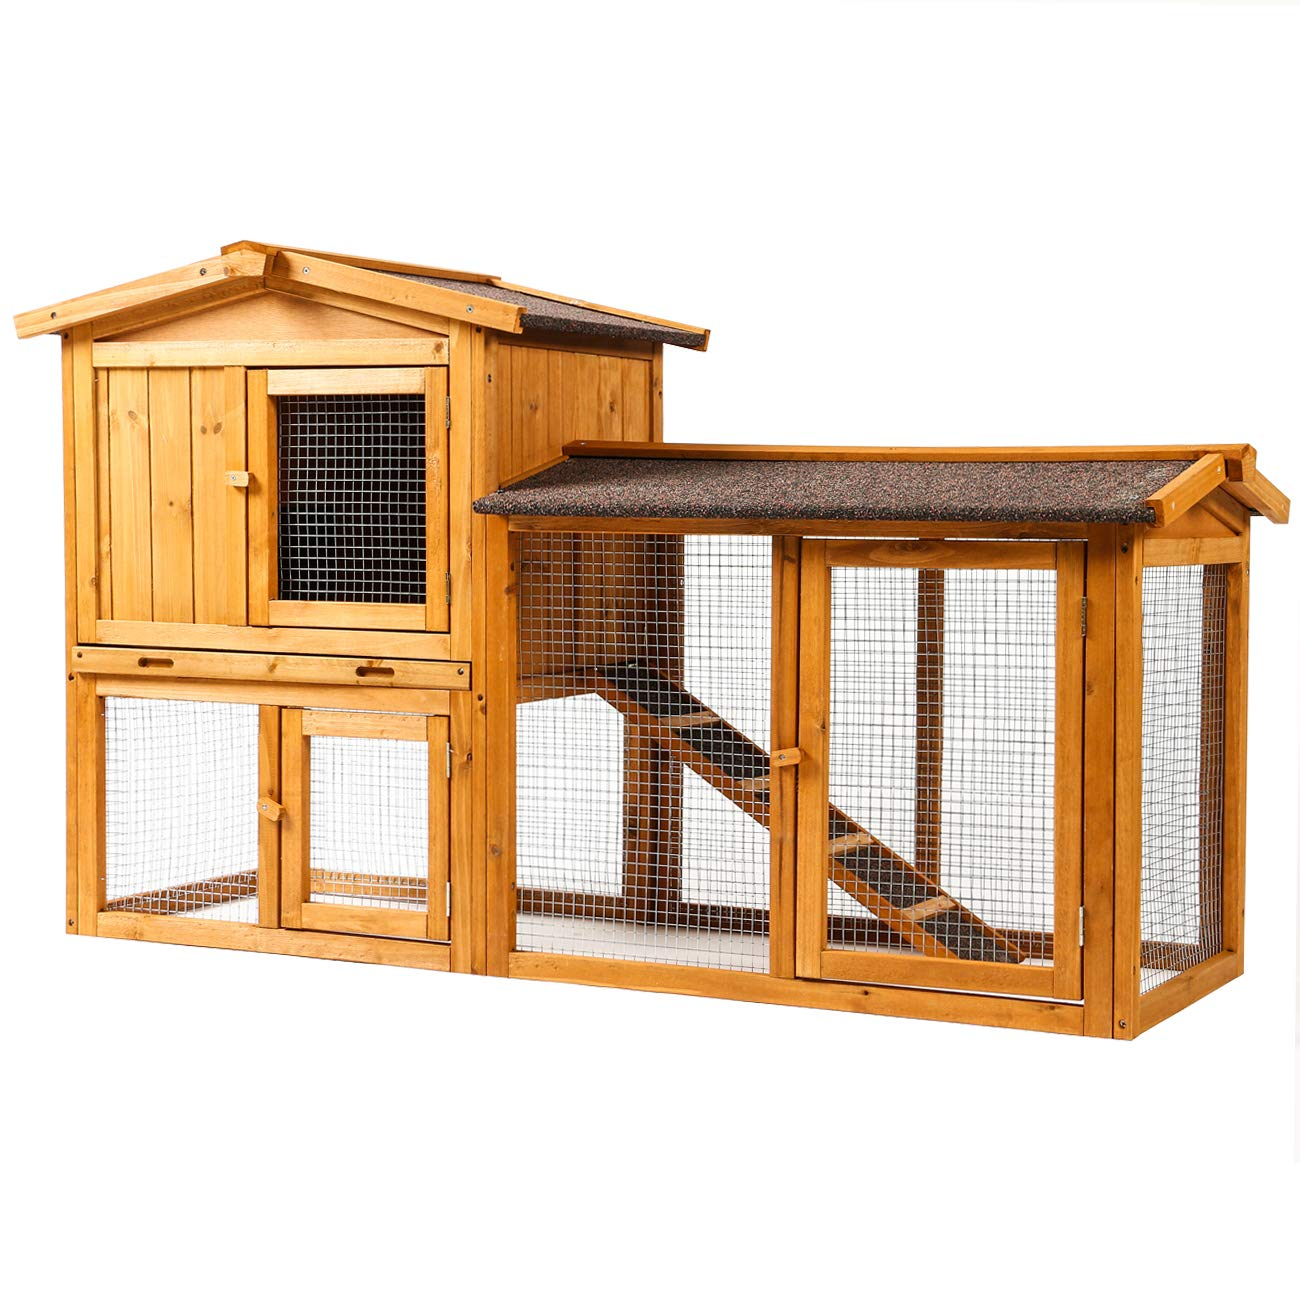 Sunnyglade Chicken Coop Large Wooden Outdoor Bunny Rabbit Hutch Hen Cage with Ventilation Door, Removable Tray & Ramp Garden Backyard Pet House Chicken Nesting Box by Sunnyglade